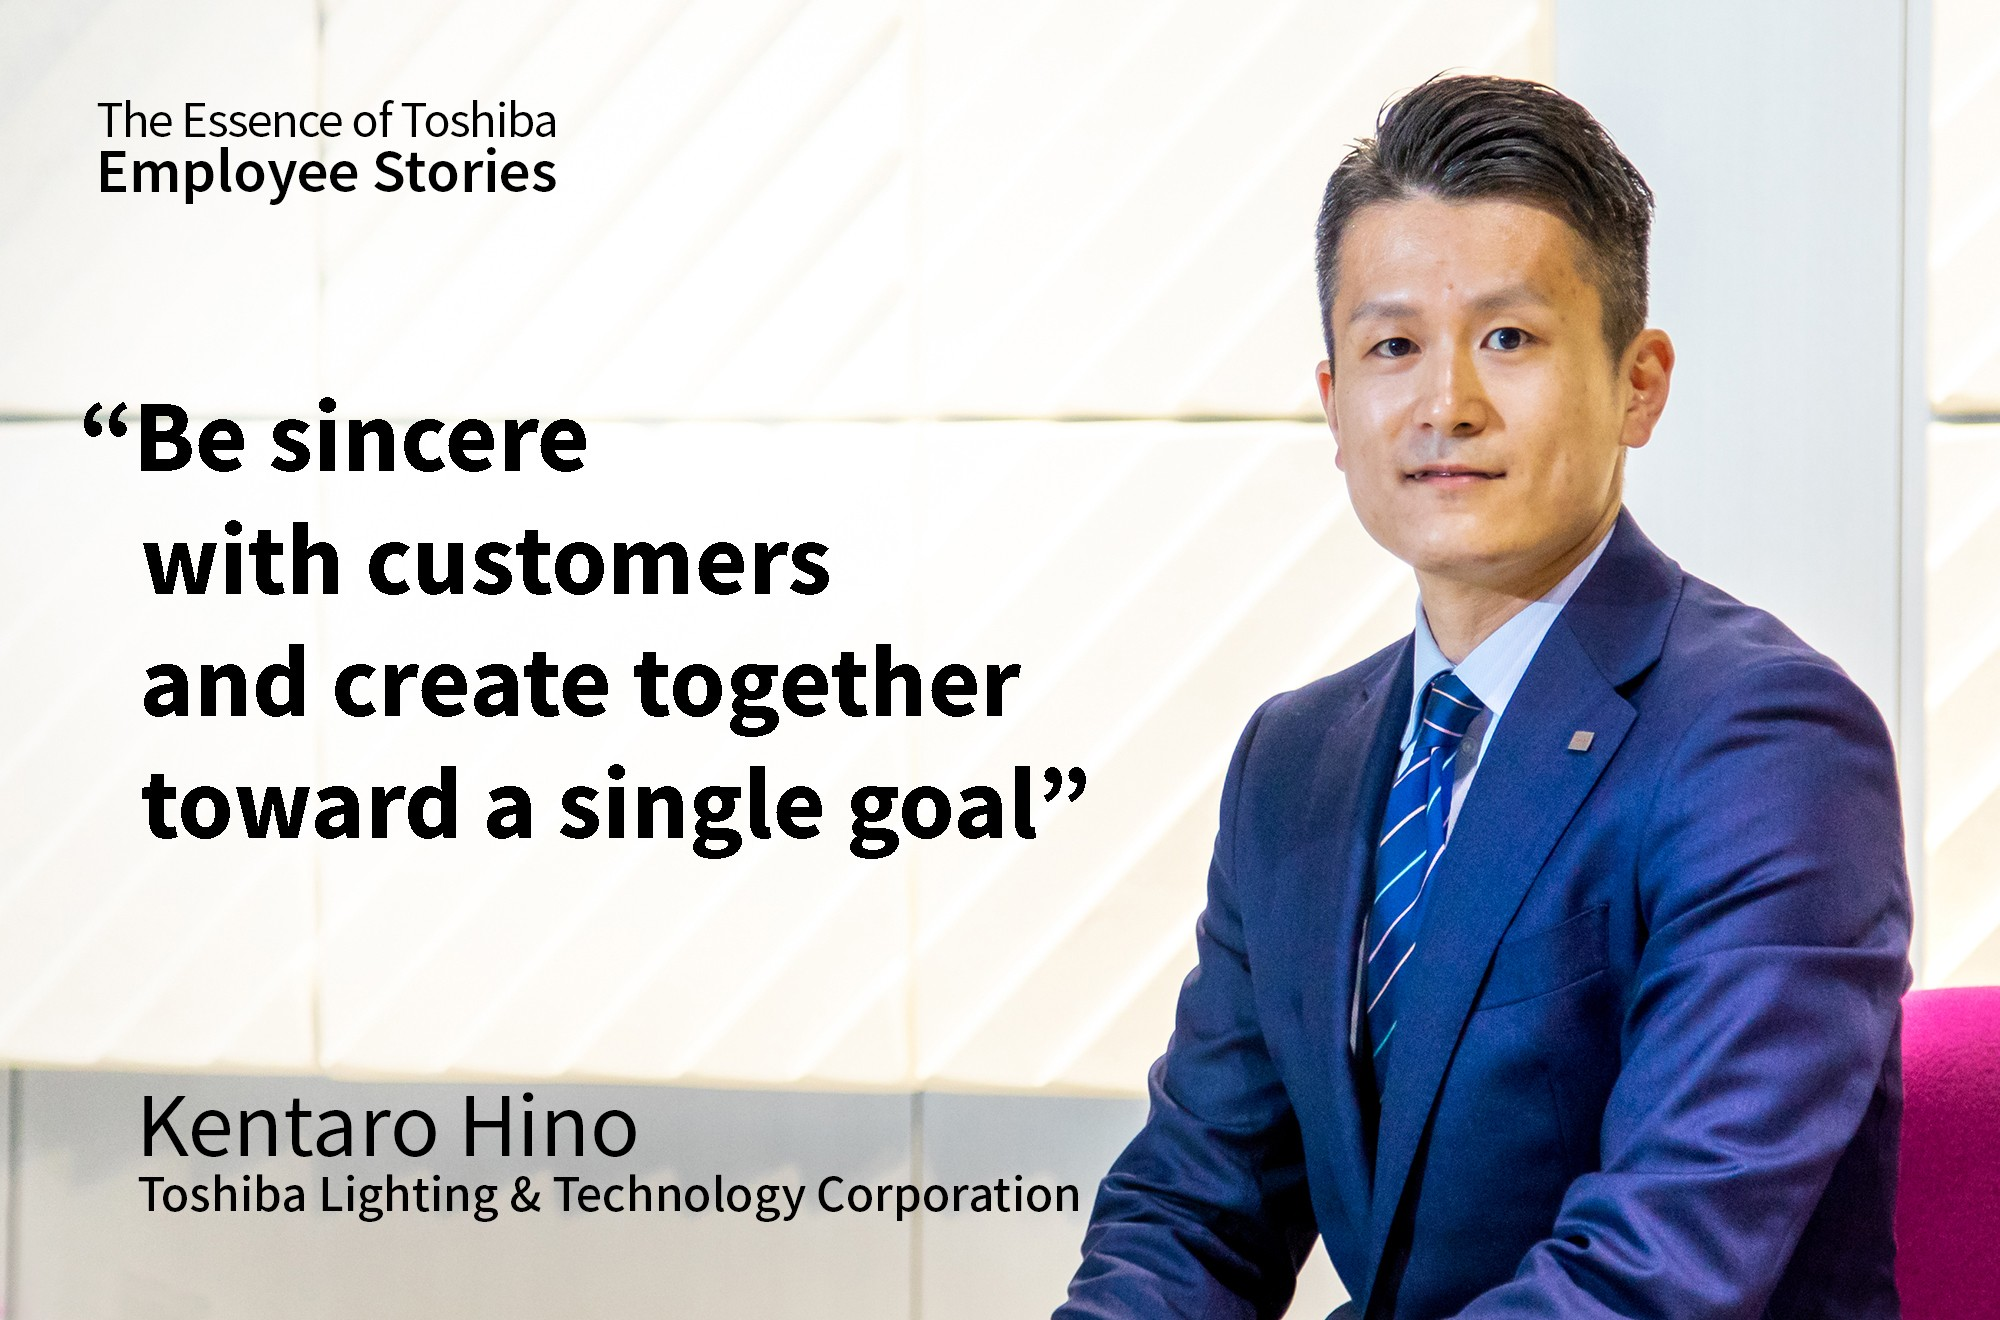 We Are Toshiba: Be Sincere with Customers and Create Together Toward a Single Goal